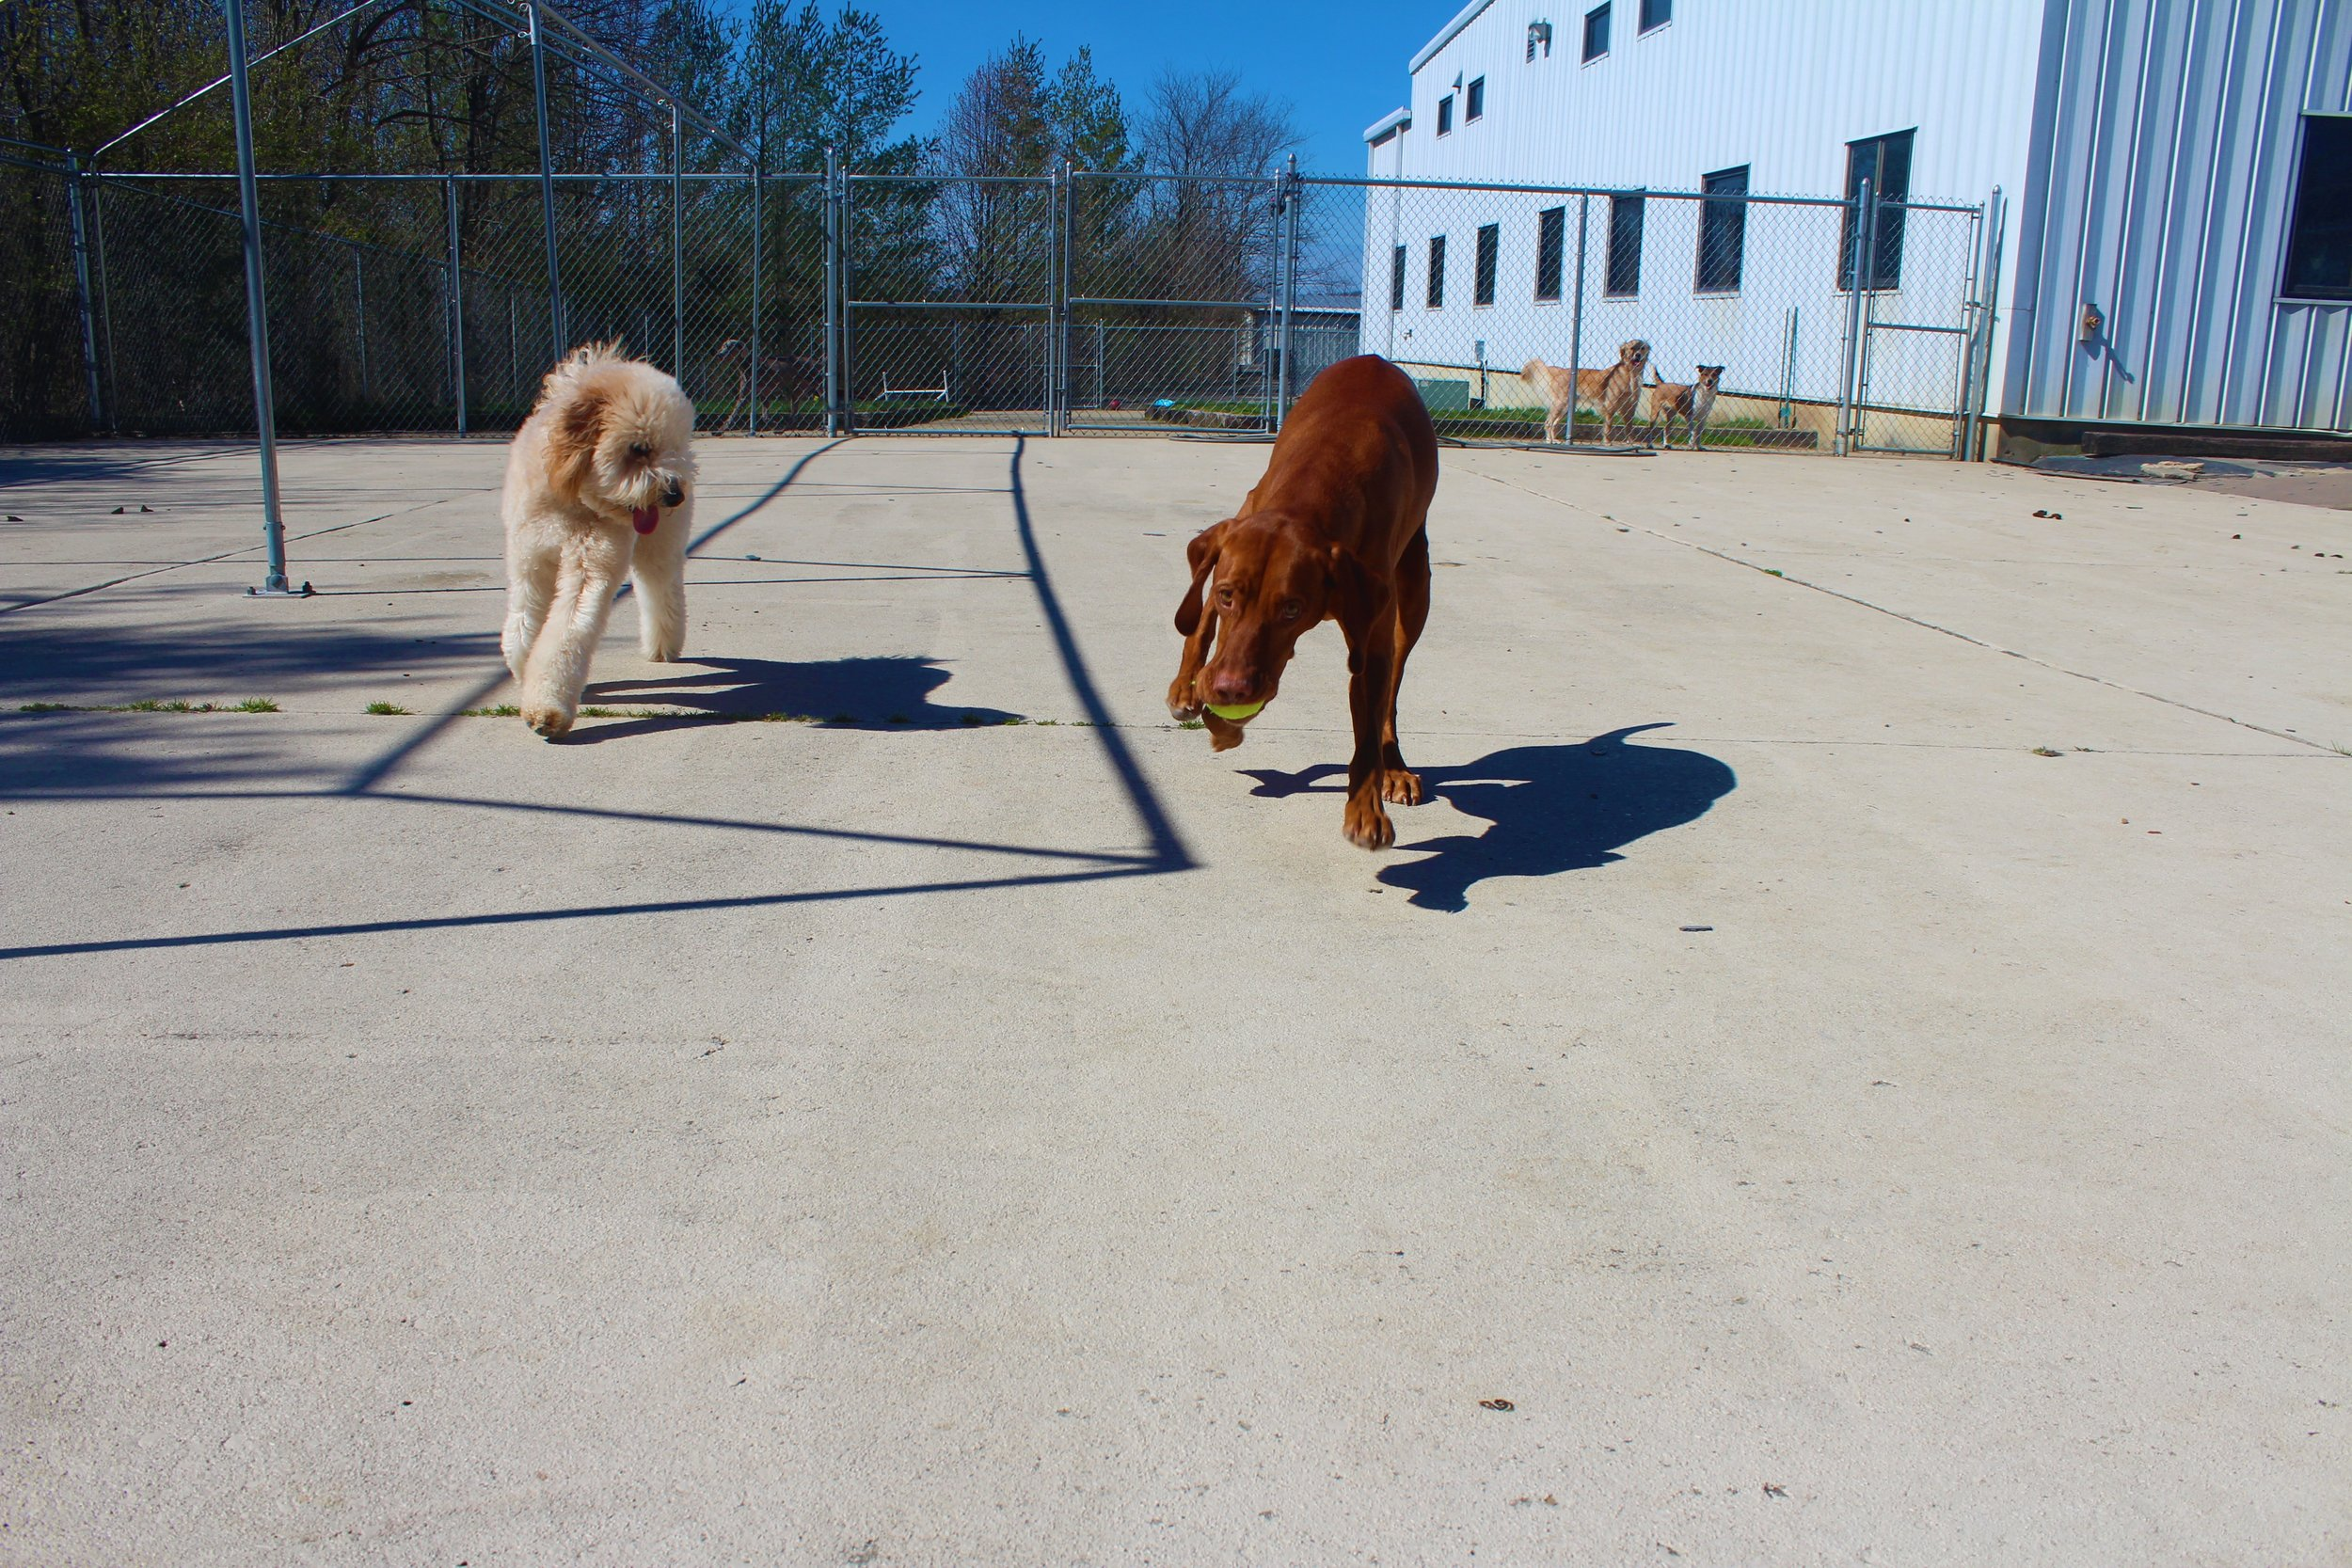 Here's a picture of Ziggy playing fetch with his dog pal Kash.  Even though Kash is quicker and will usually get the ball before Ziggy, Zigs never gives up.  There's always the next time the ball is thrown.  Like an eternal optimist Ziggy always tries his best.